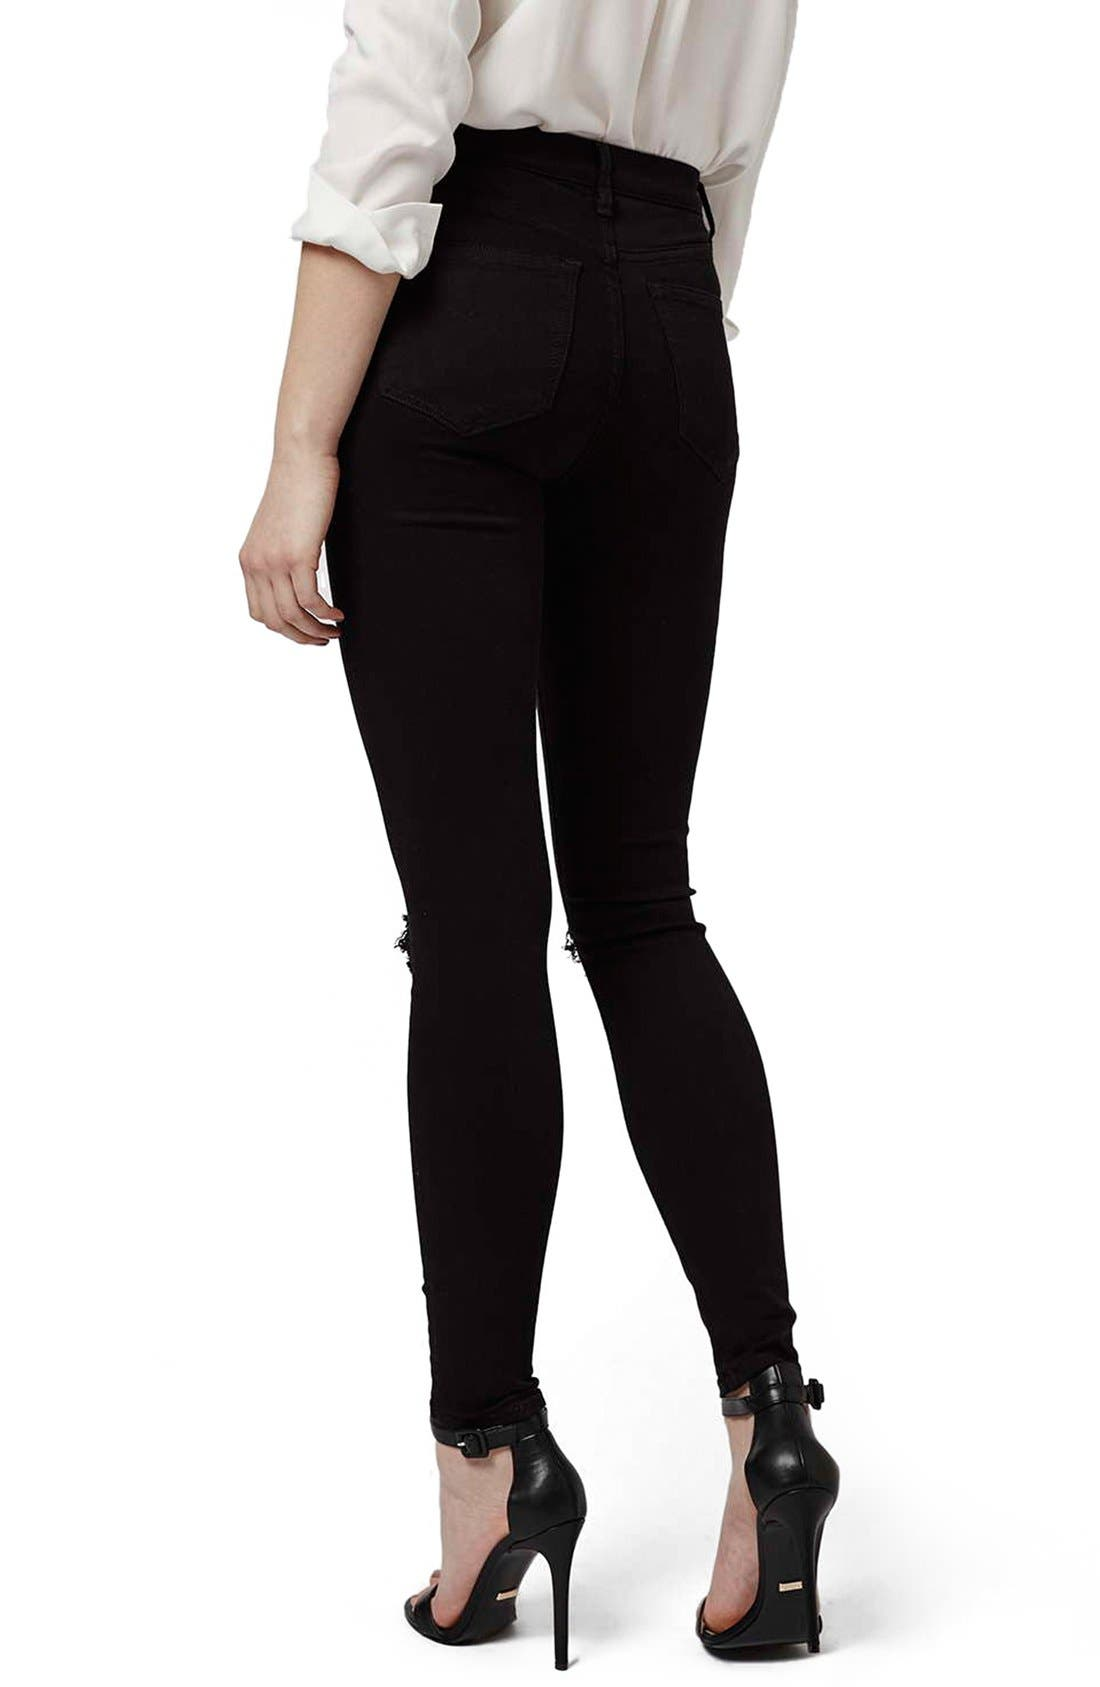 TOPSHOP, Ripped High Waist Ankle Skinny Jeans, Alternate thumbnail 9, color, 001